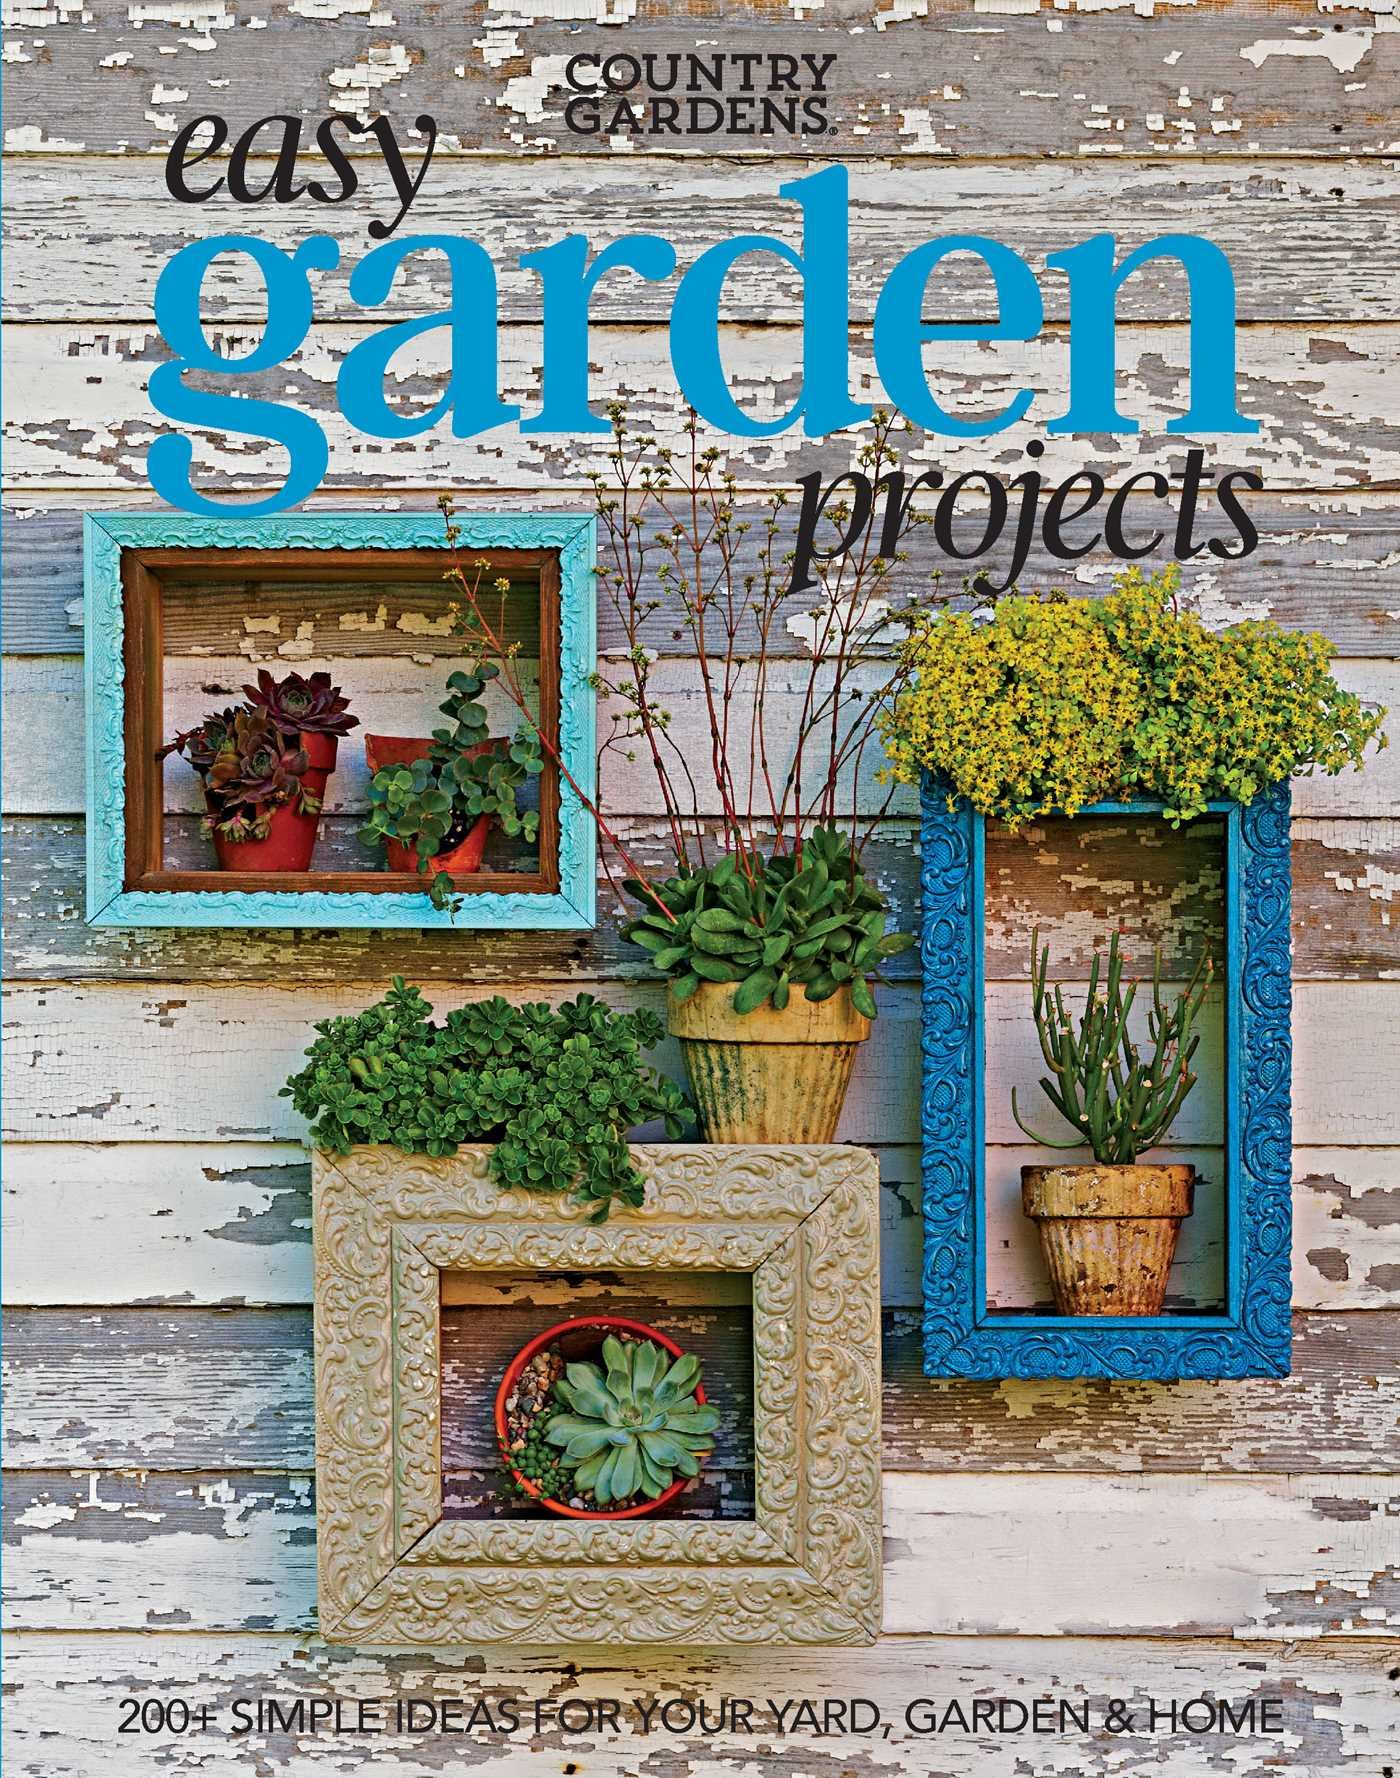 Easy Garden Projects 200 Simple Ideas For Your Yard Garden Home Country Gardens 9781681882871 Amazon Com Books